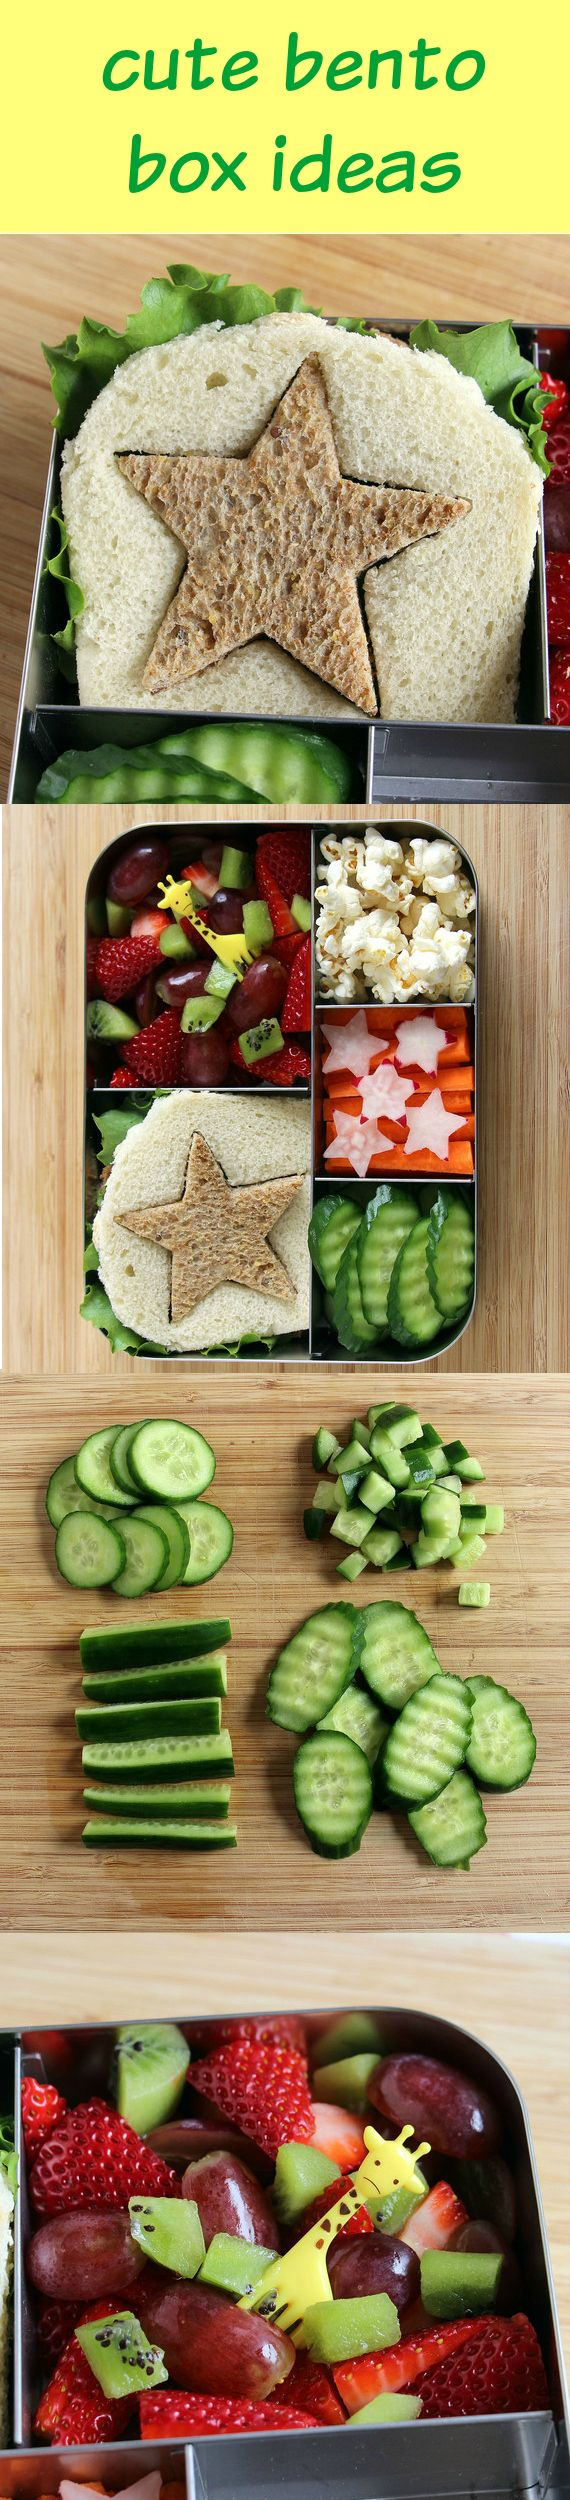 tempt picky eaters with bento box lunches bento box lunch eat fruit and box lunches. Black Bedroom Furniture Sets. Home Design Ideas